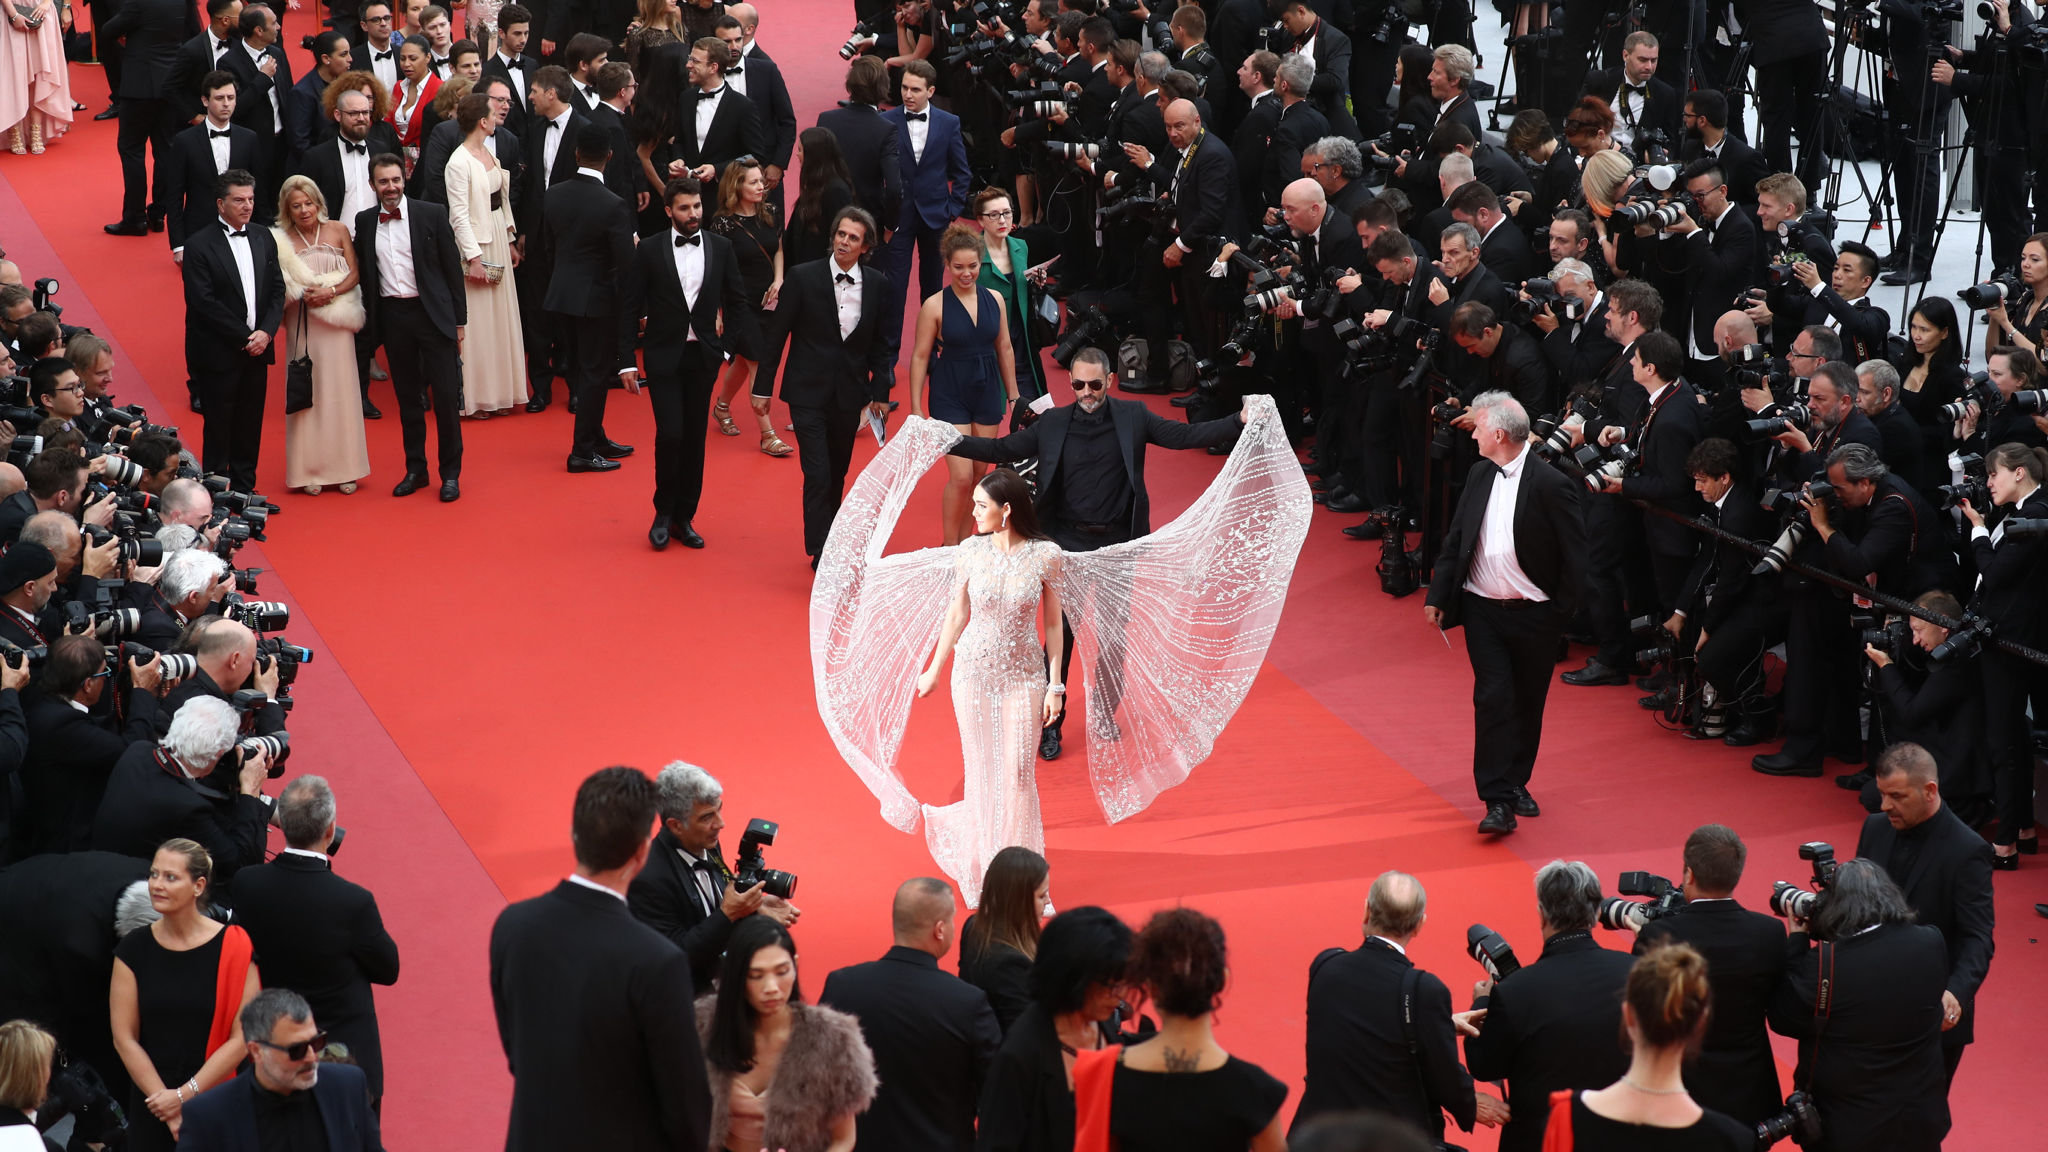 Cannes Film Festival announces the line-up for its cancelled event |  Financial Times